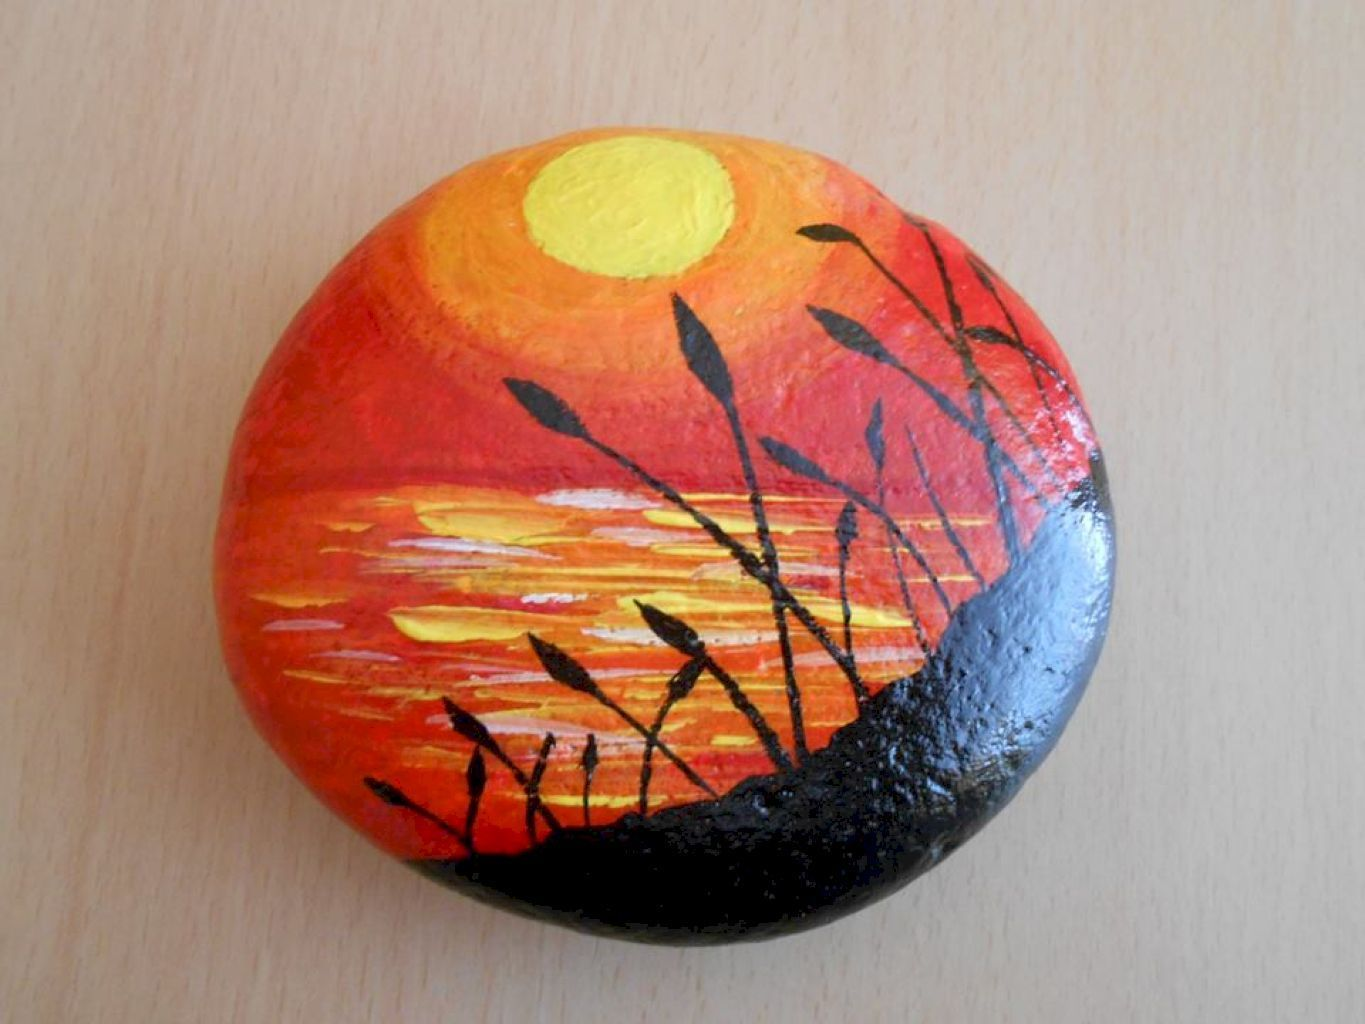 How To Paint Rocks Step By Step Painted Rock Ideas Rock